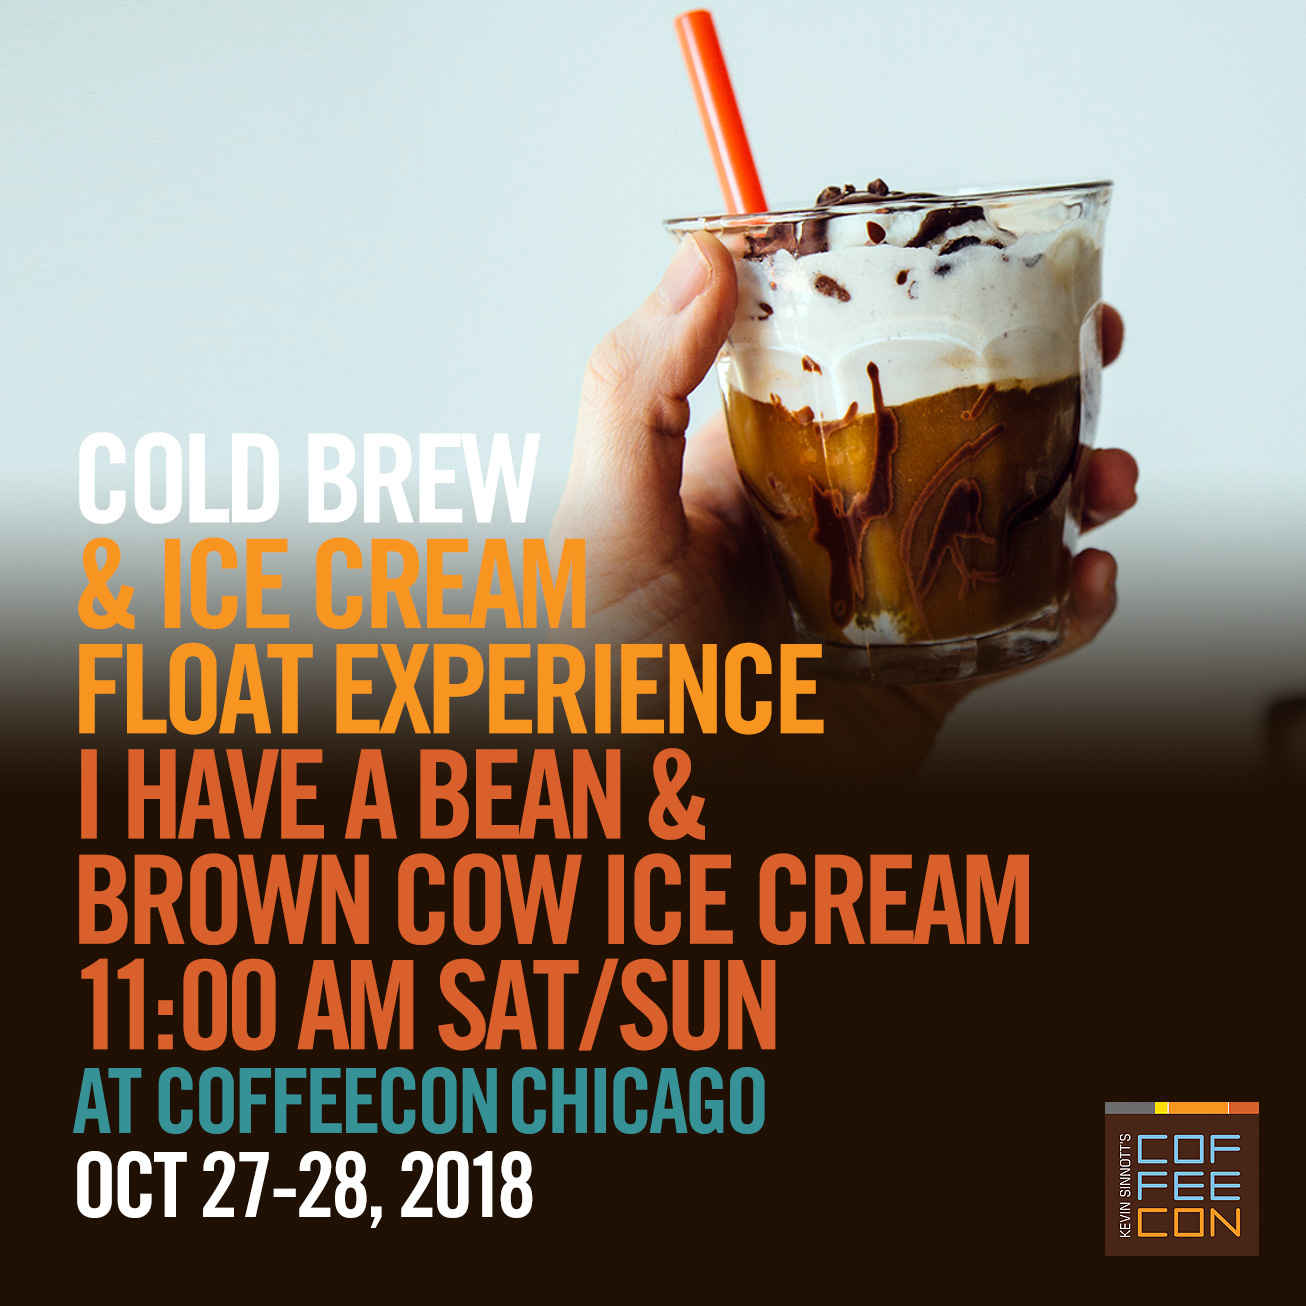 Cold Brew and Ice Cream Float at CoffeeConChicago 2018